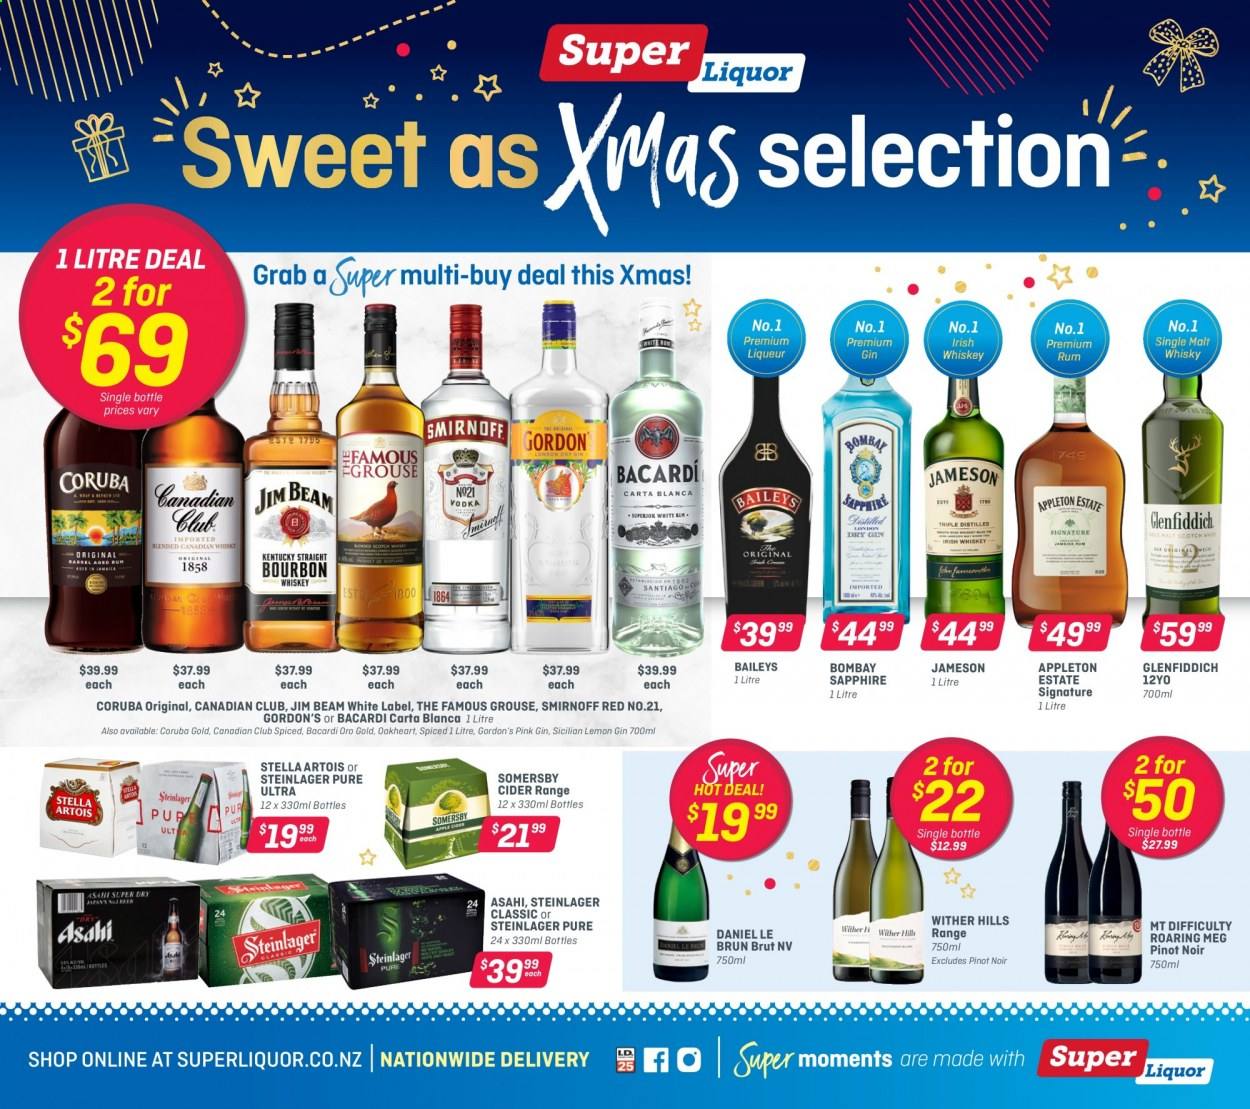 Super Liquor mailer - 14.12.2020 - 03.01.2021 - Sales products - Stella Artois, wine, Pinot Noir, Daniel Le Brun, Wither Hills, apple cider, Bacardi, gin, liqueur, rum, Smirnoff, whiskey, Jameson, Baileys, Gordon's, Glenfiddich, The Famous Grouse, Jim Beam. Page 1.